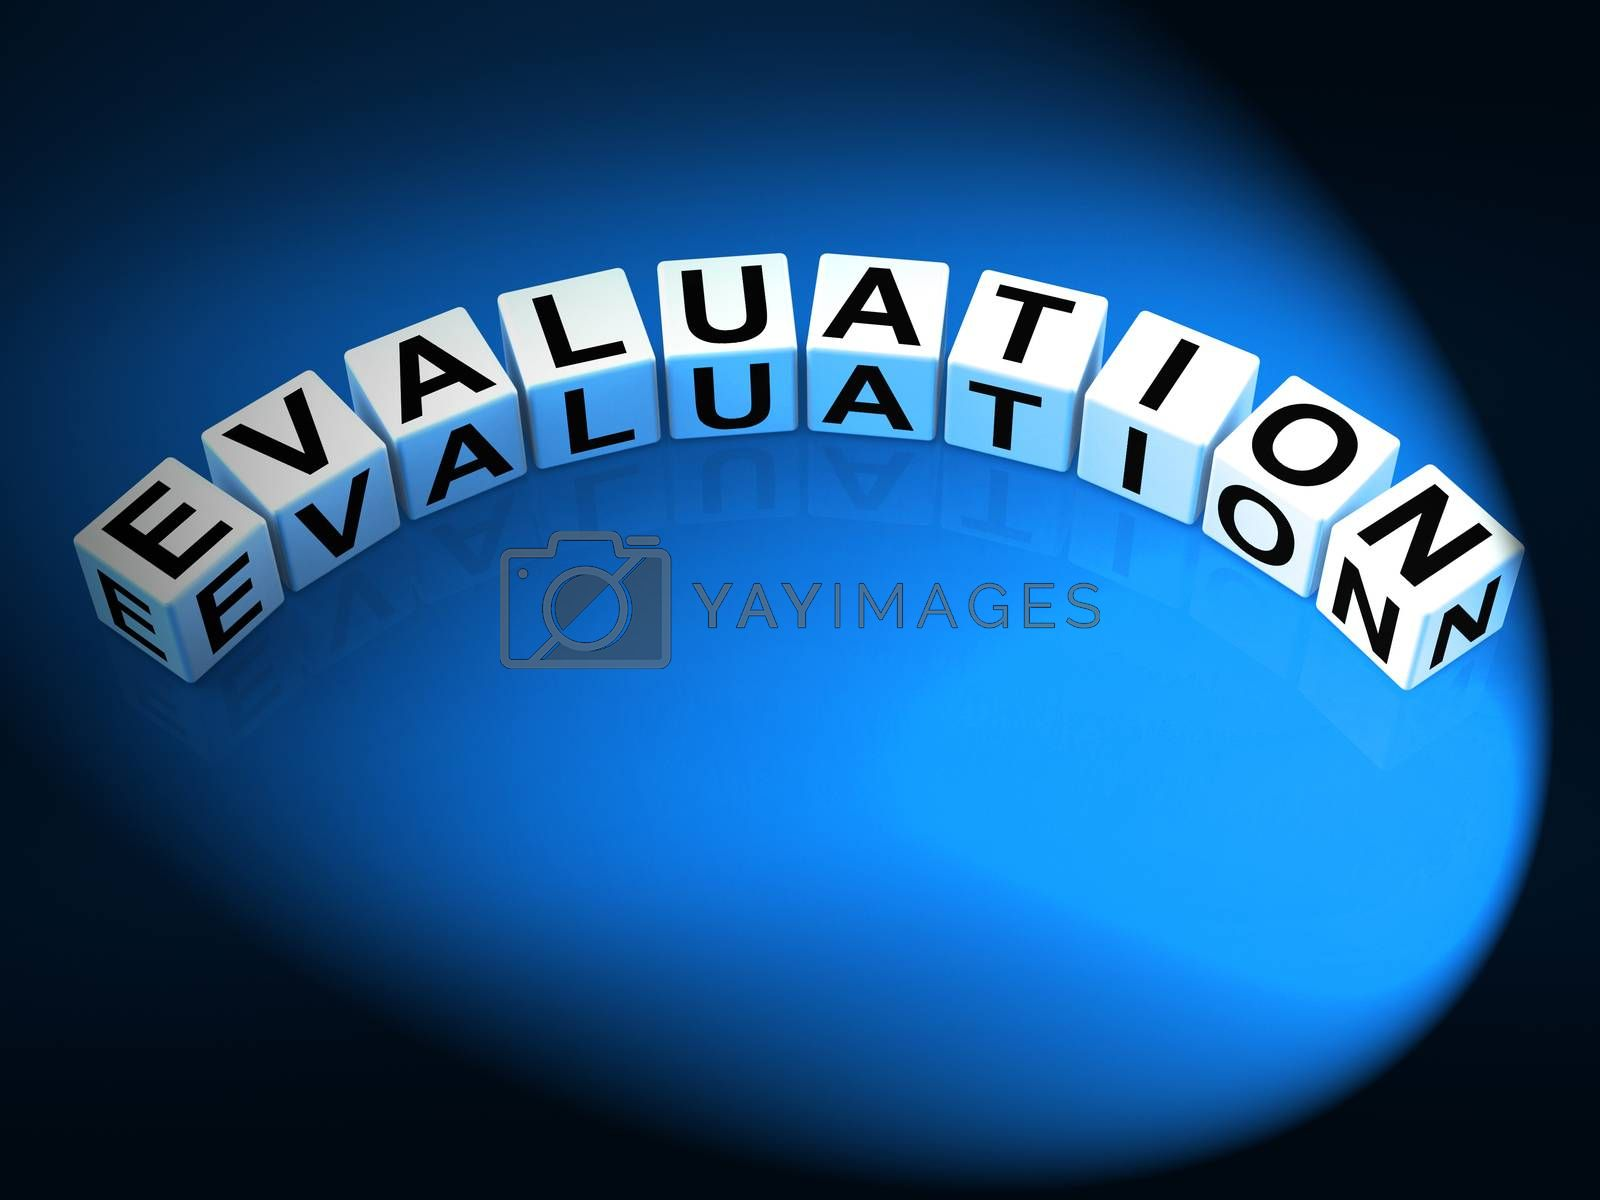 Evaluation Letters Show Judgement Assessment And Review by stuartmiles